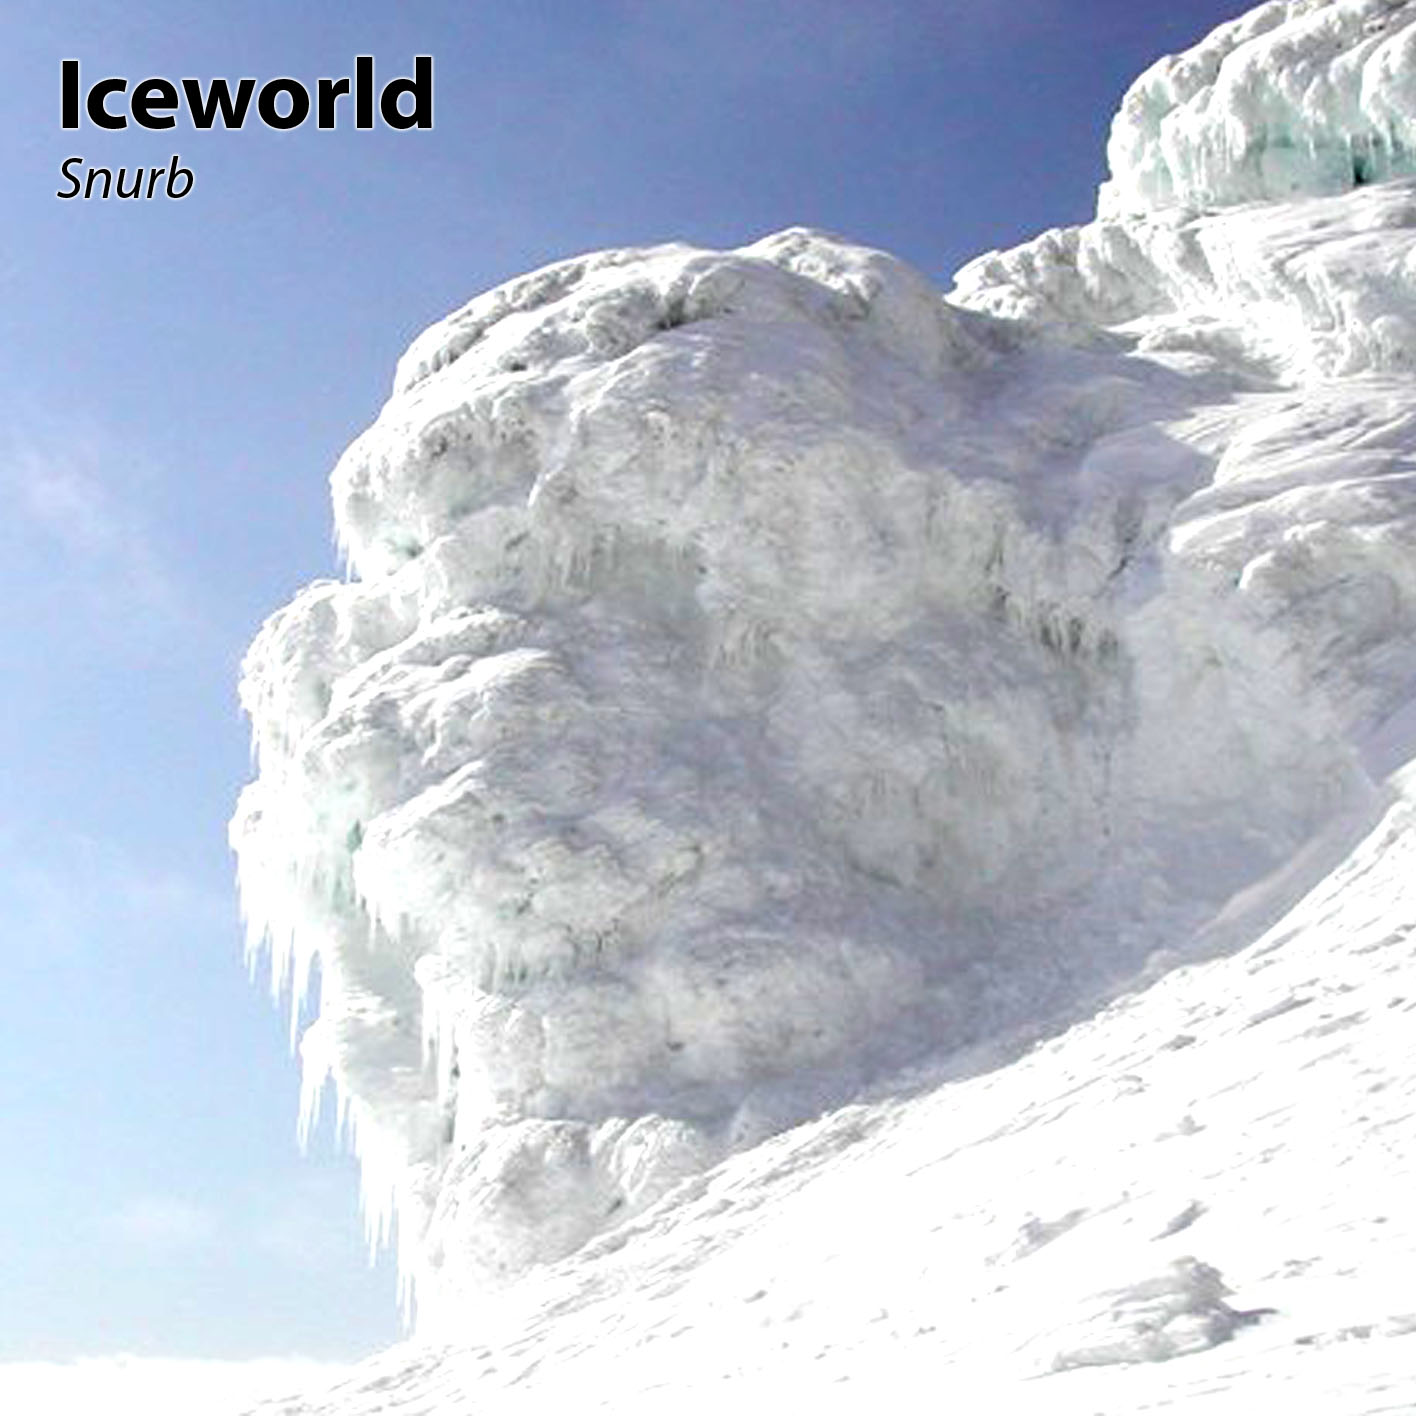 Iceworld front cover